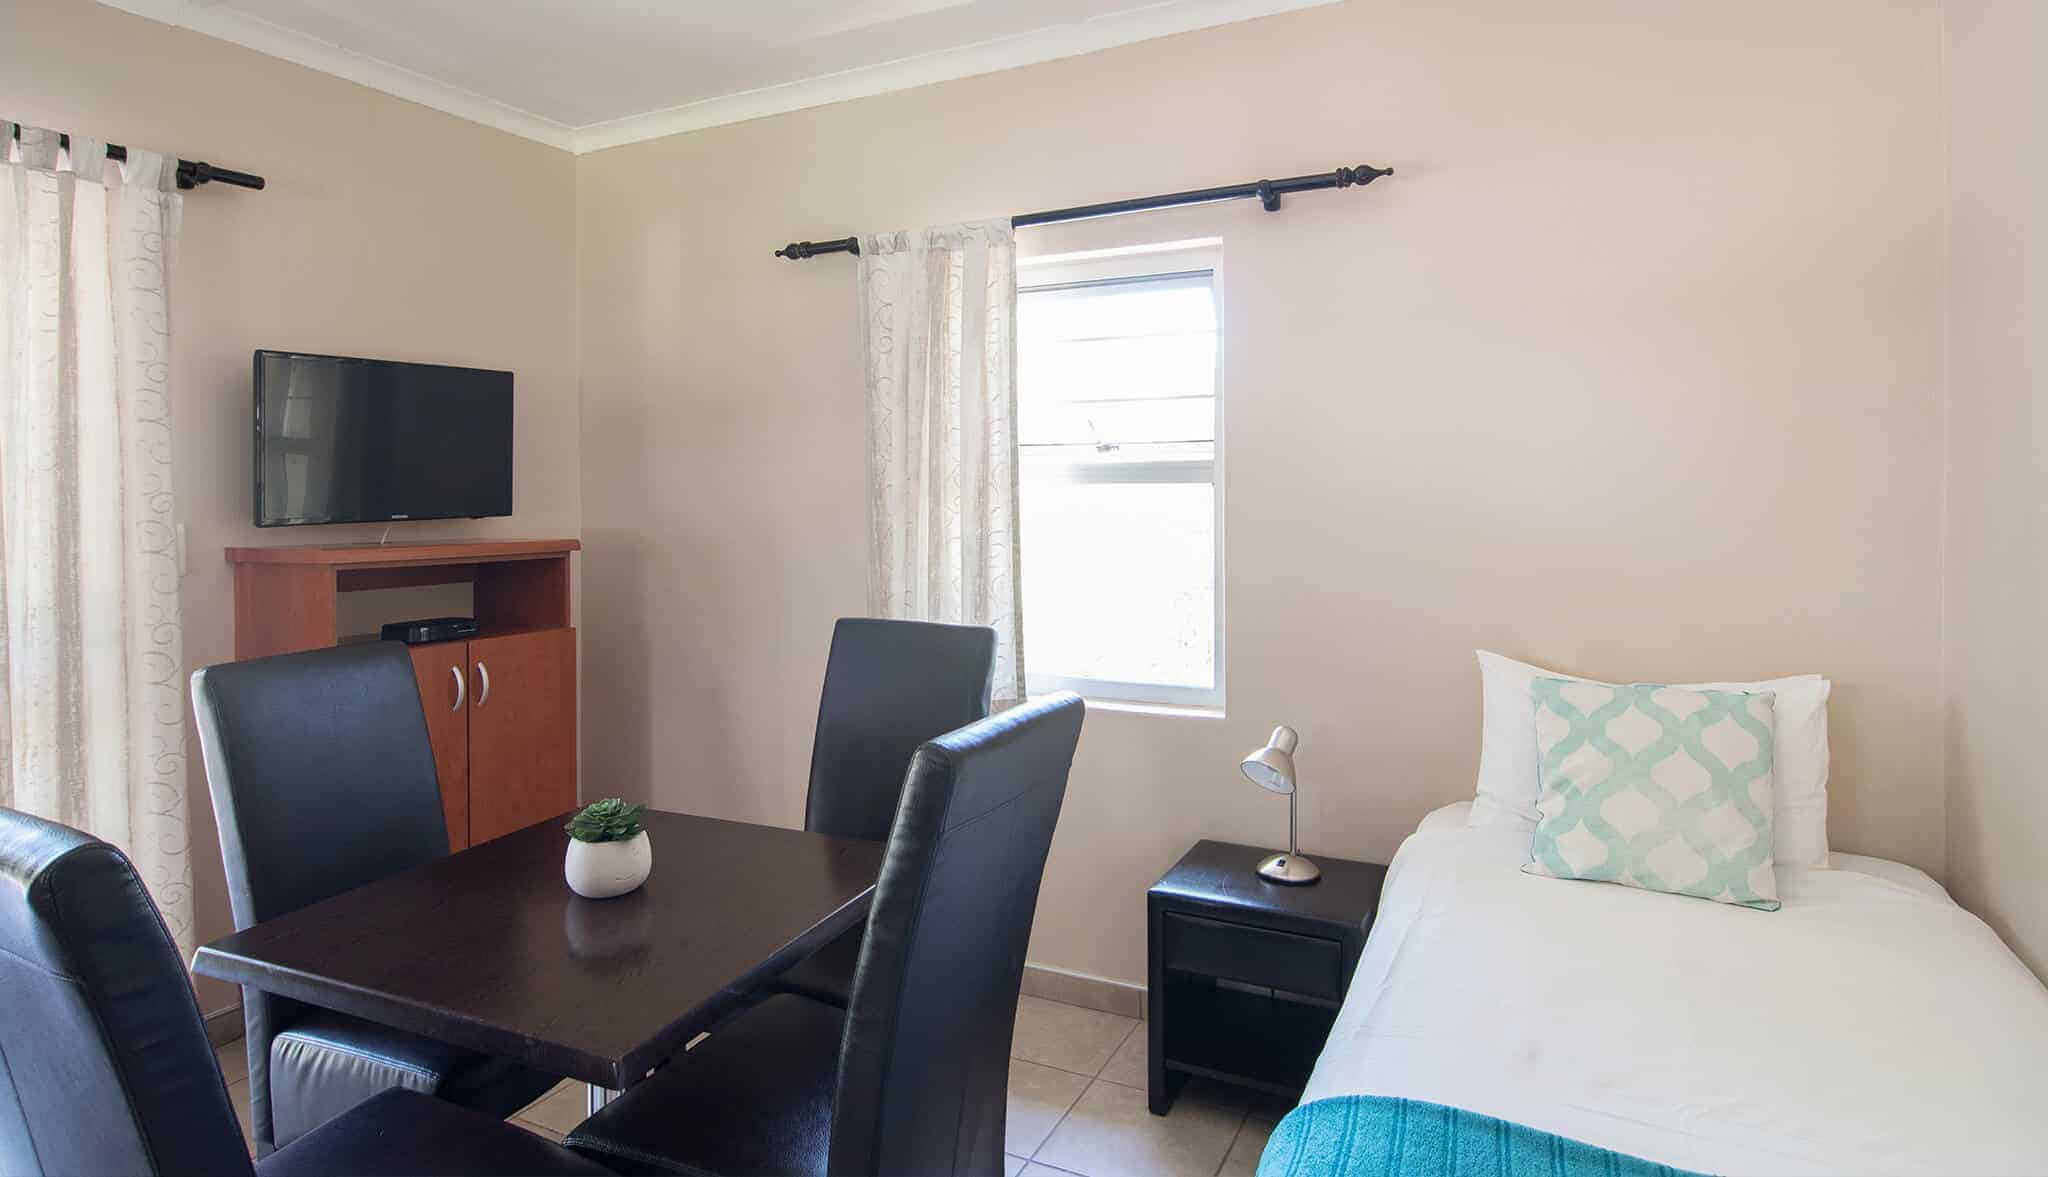 4 Bed Self-Catering Chalet | Affordable Self-Catering Accommodation In Windhoek | Arebbusch Travel Lodge